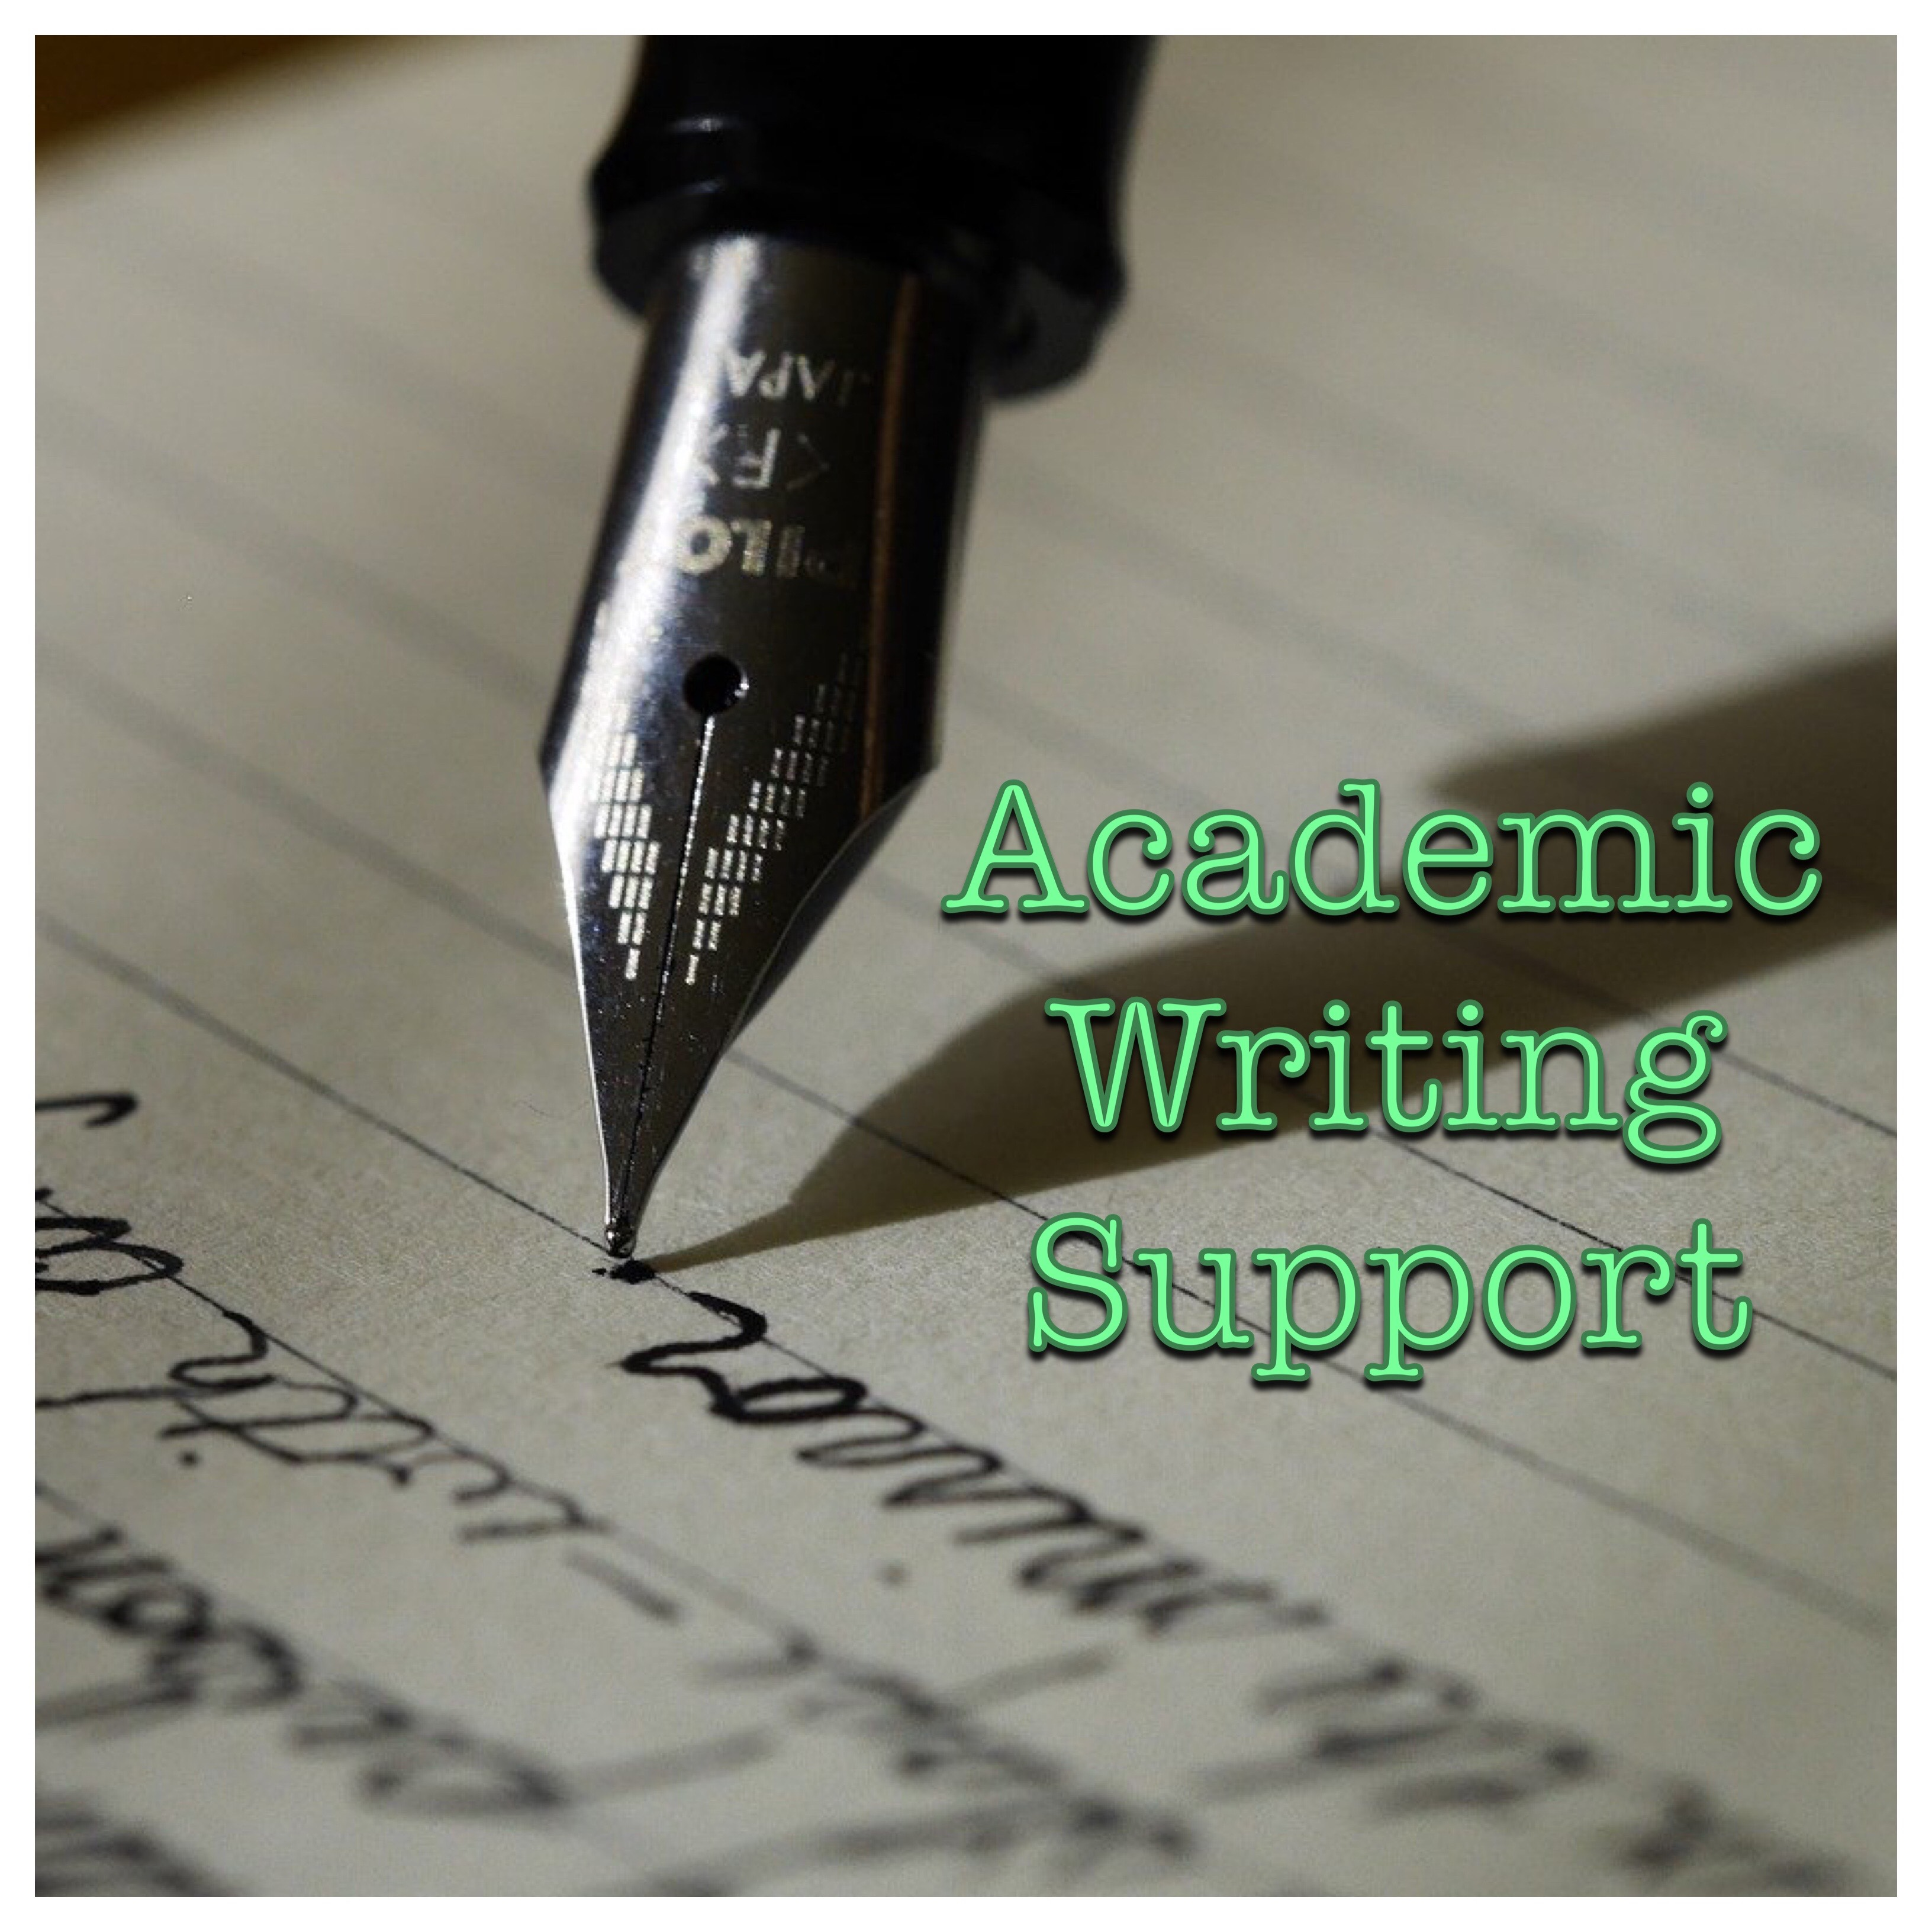 Academic Writing Support Logo (Fountain pen and paper)